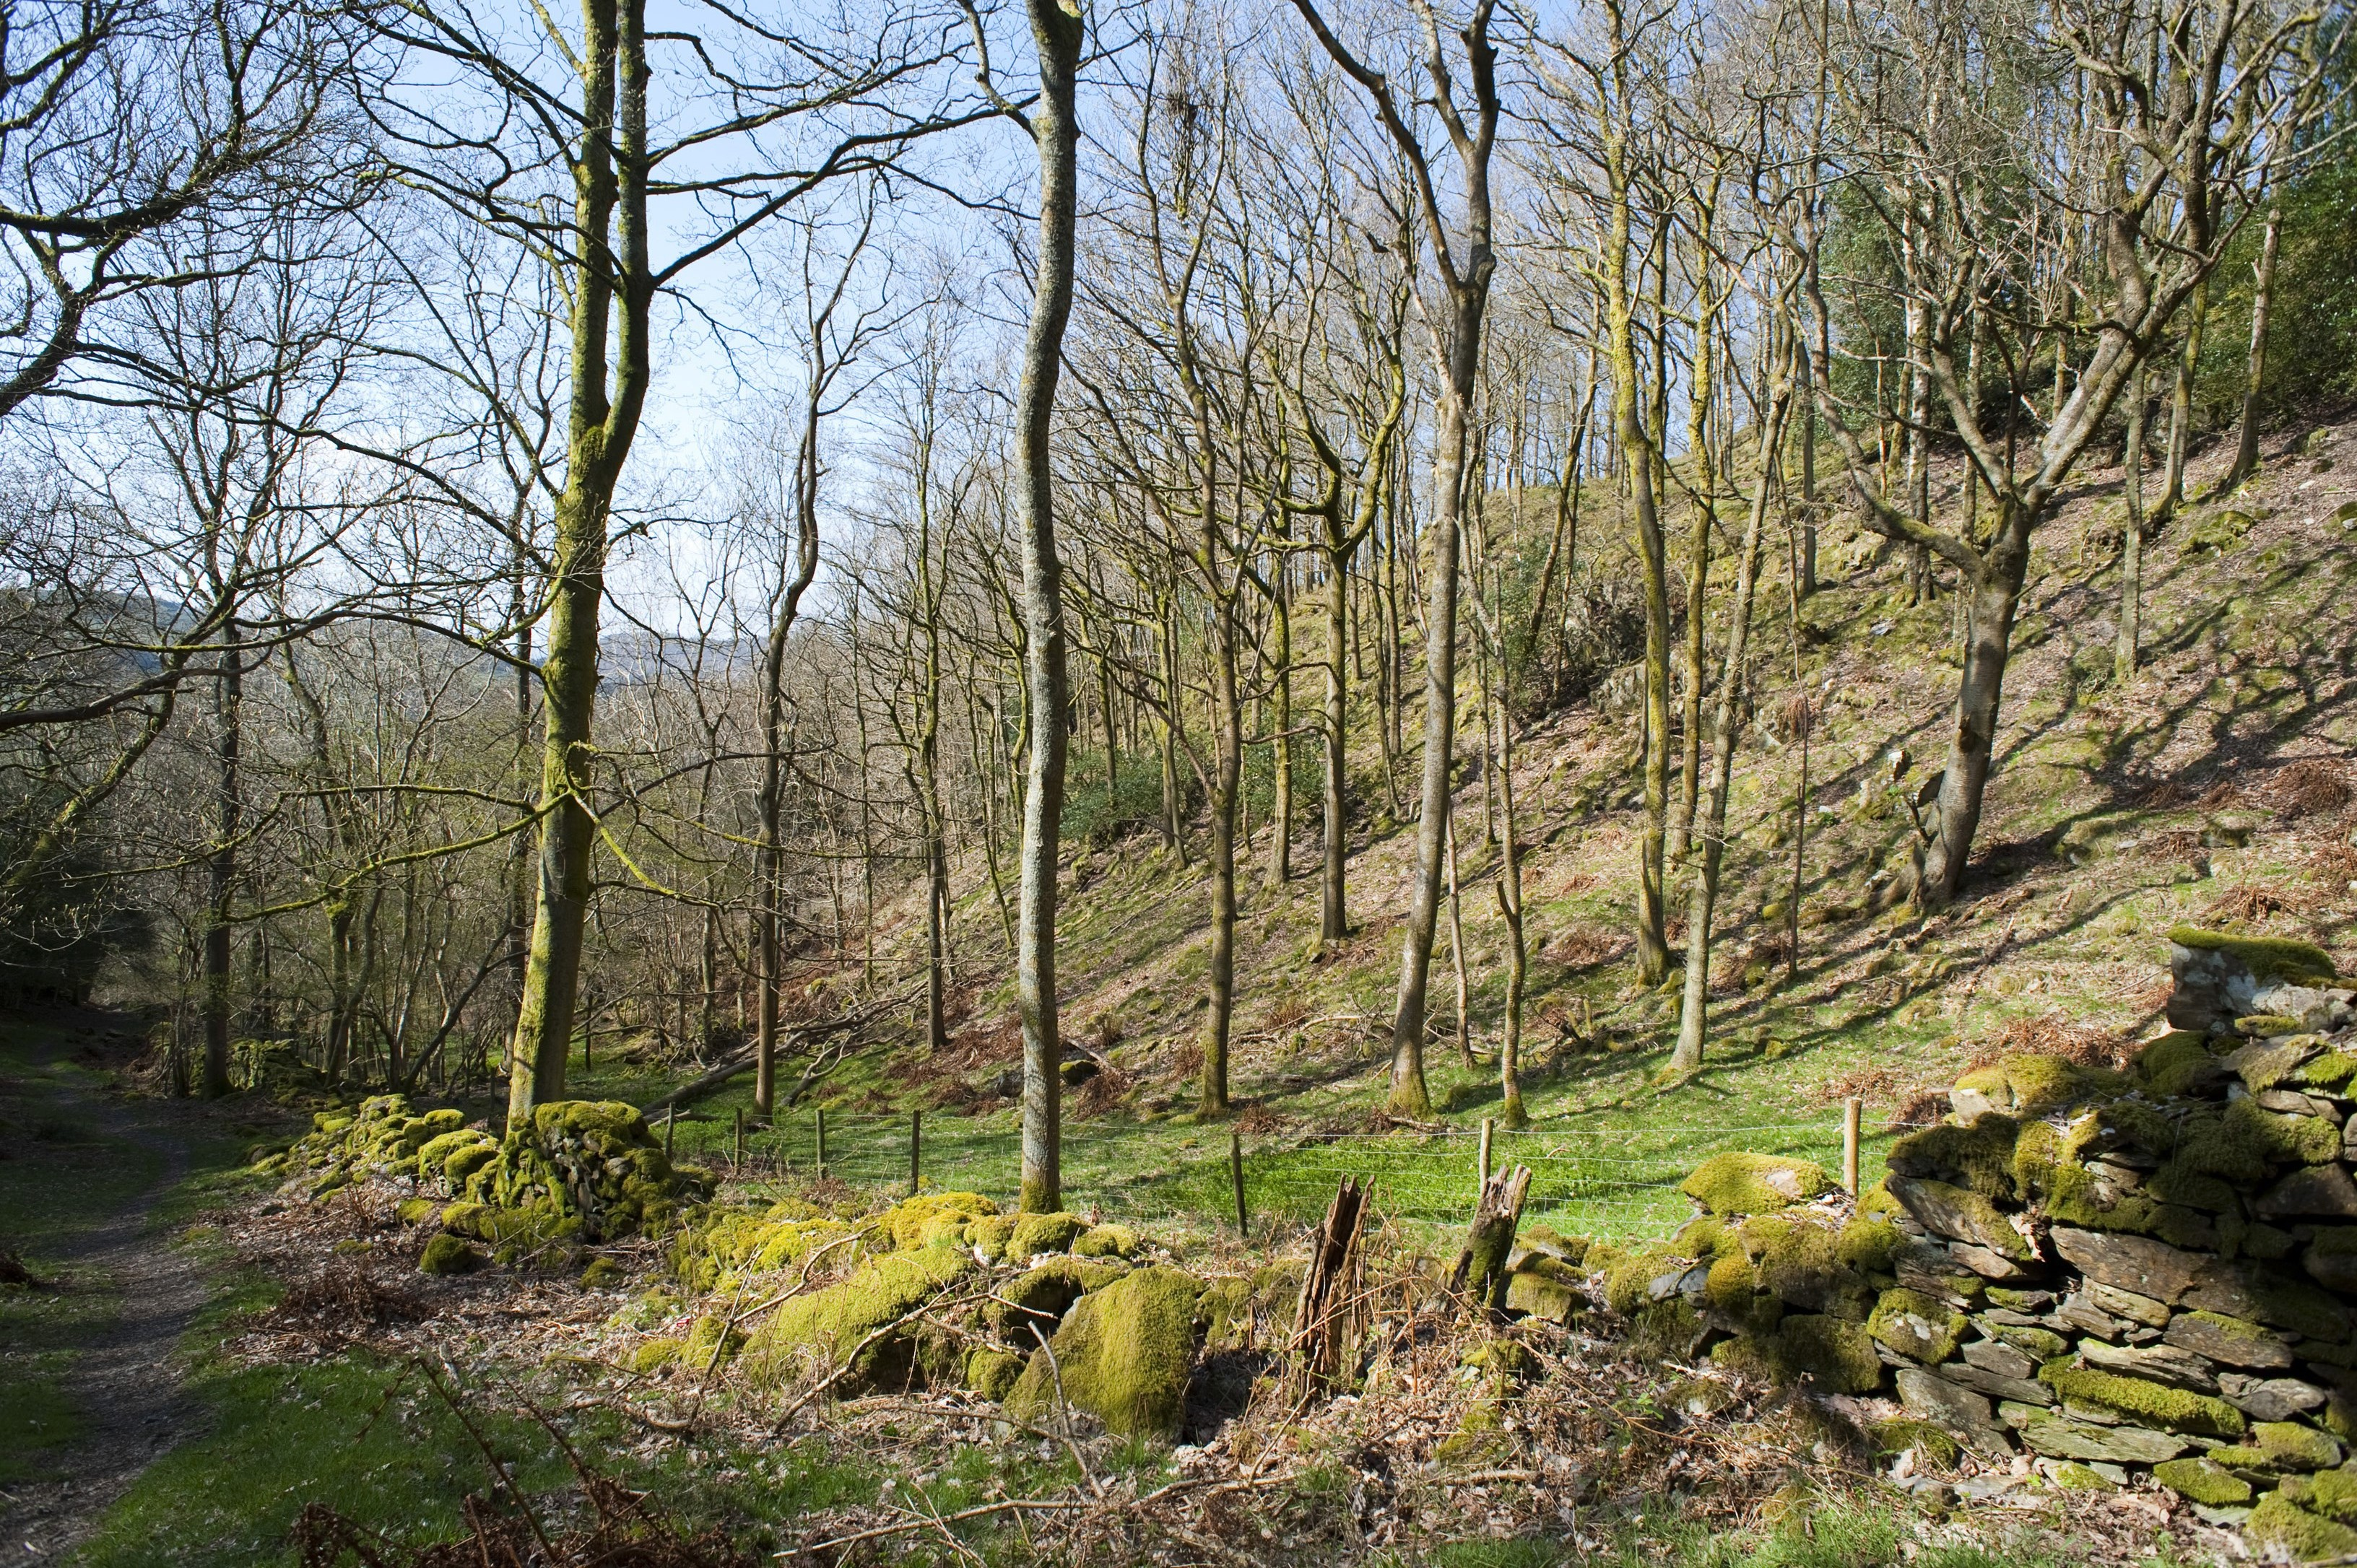 View of scenic English woodland with bare deciduous trees in late autumn or winter